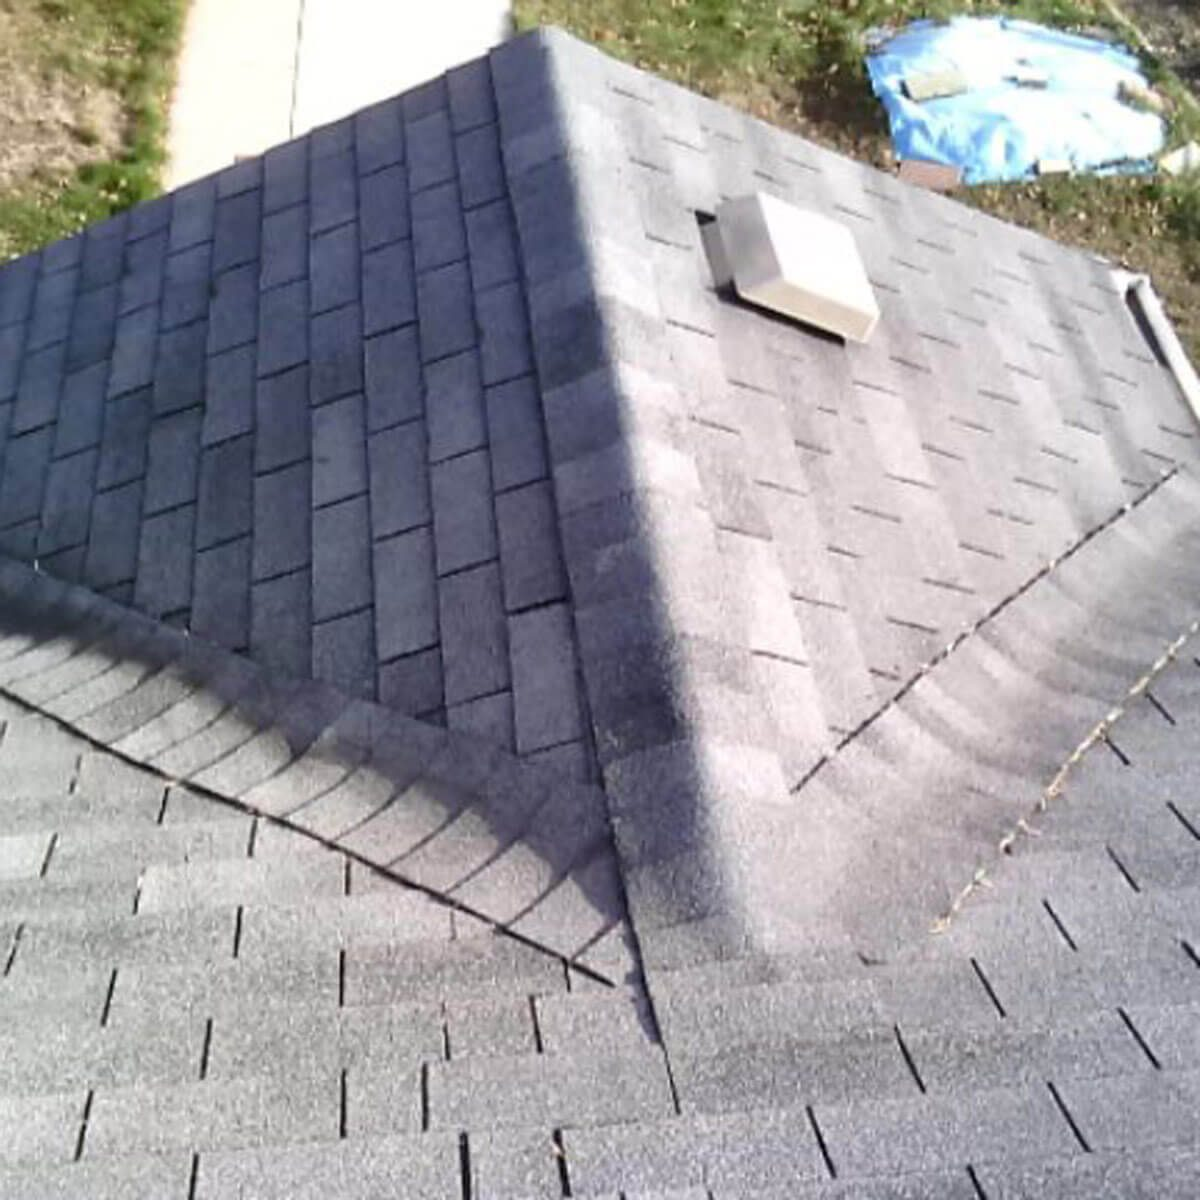 Ridge shingles aren't just for ridges anymore